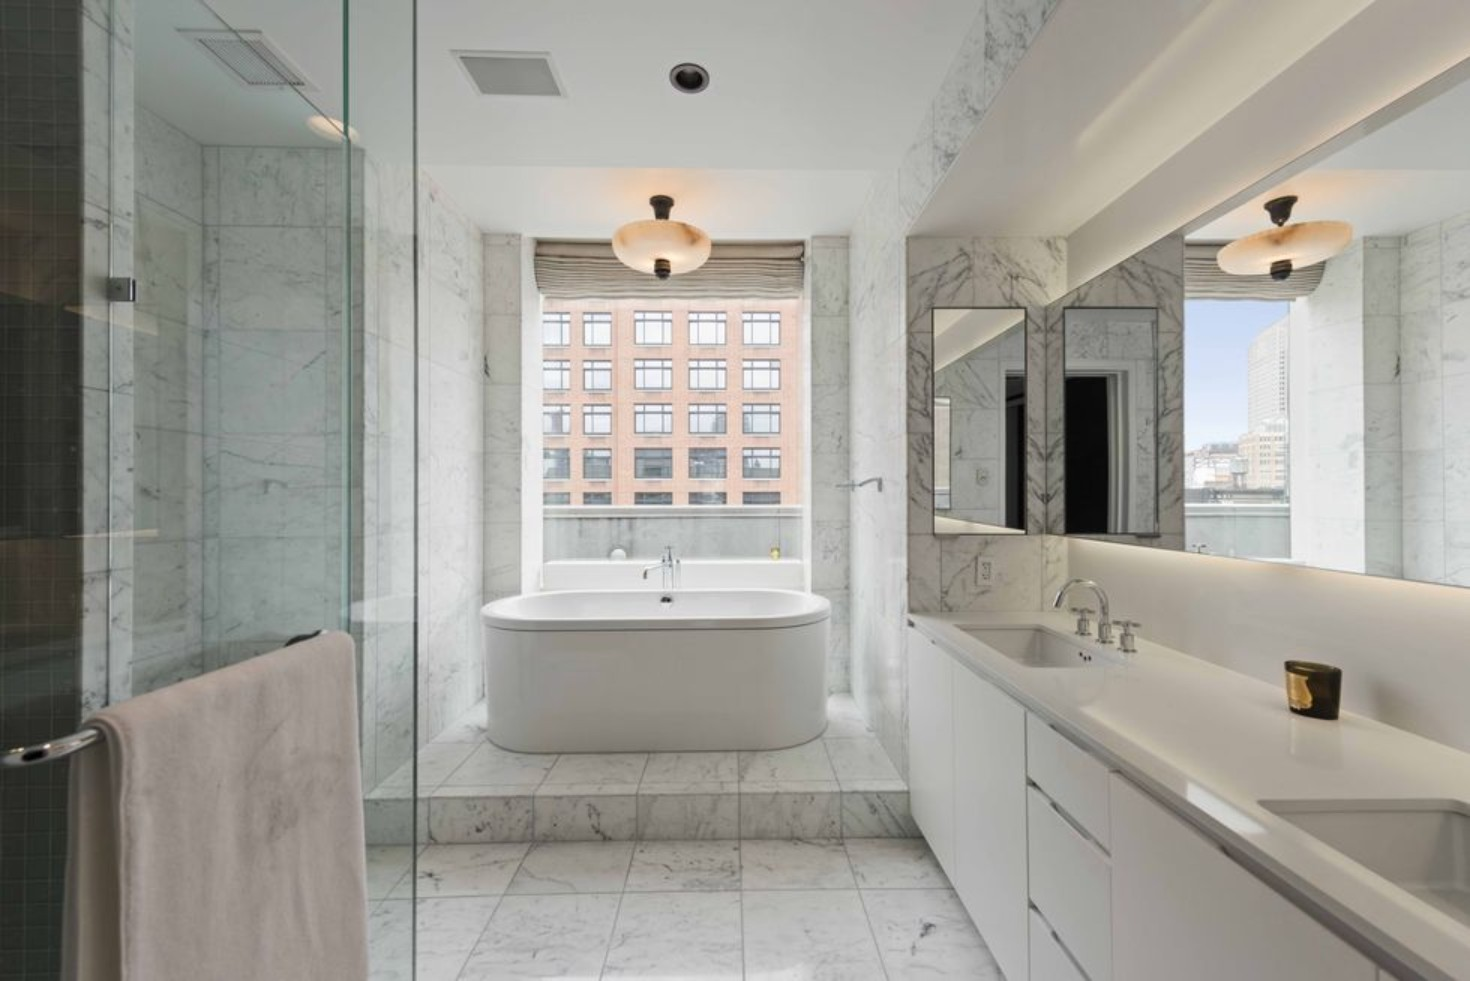 Take a Peek Inside Justin Timberlake's NYC Apartment